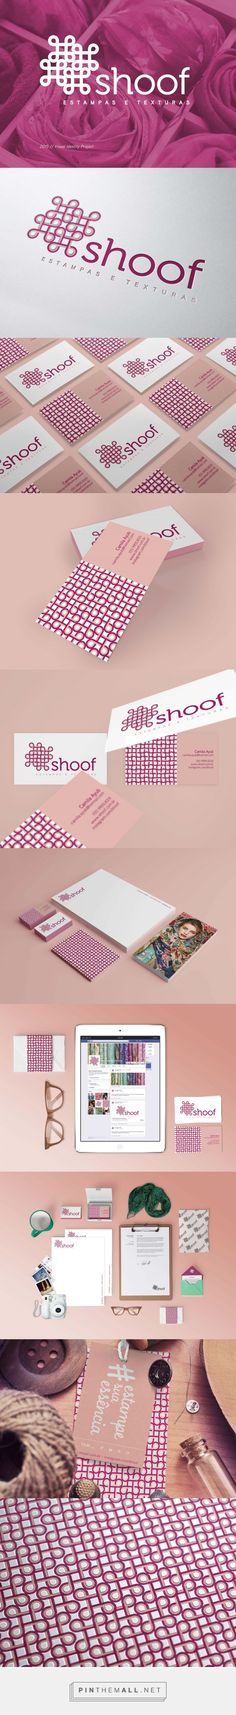 Shoof Branding by Joyce Kiesel on Behance | Fivestar Branding – Design and Branding Agency & Inspiration Gallery